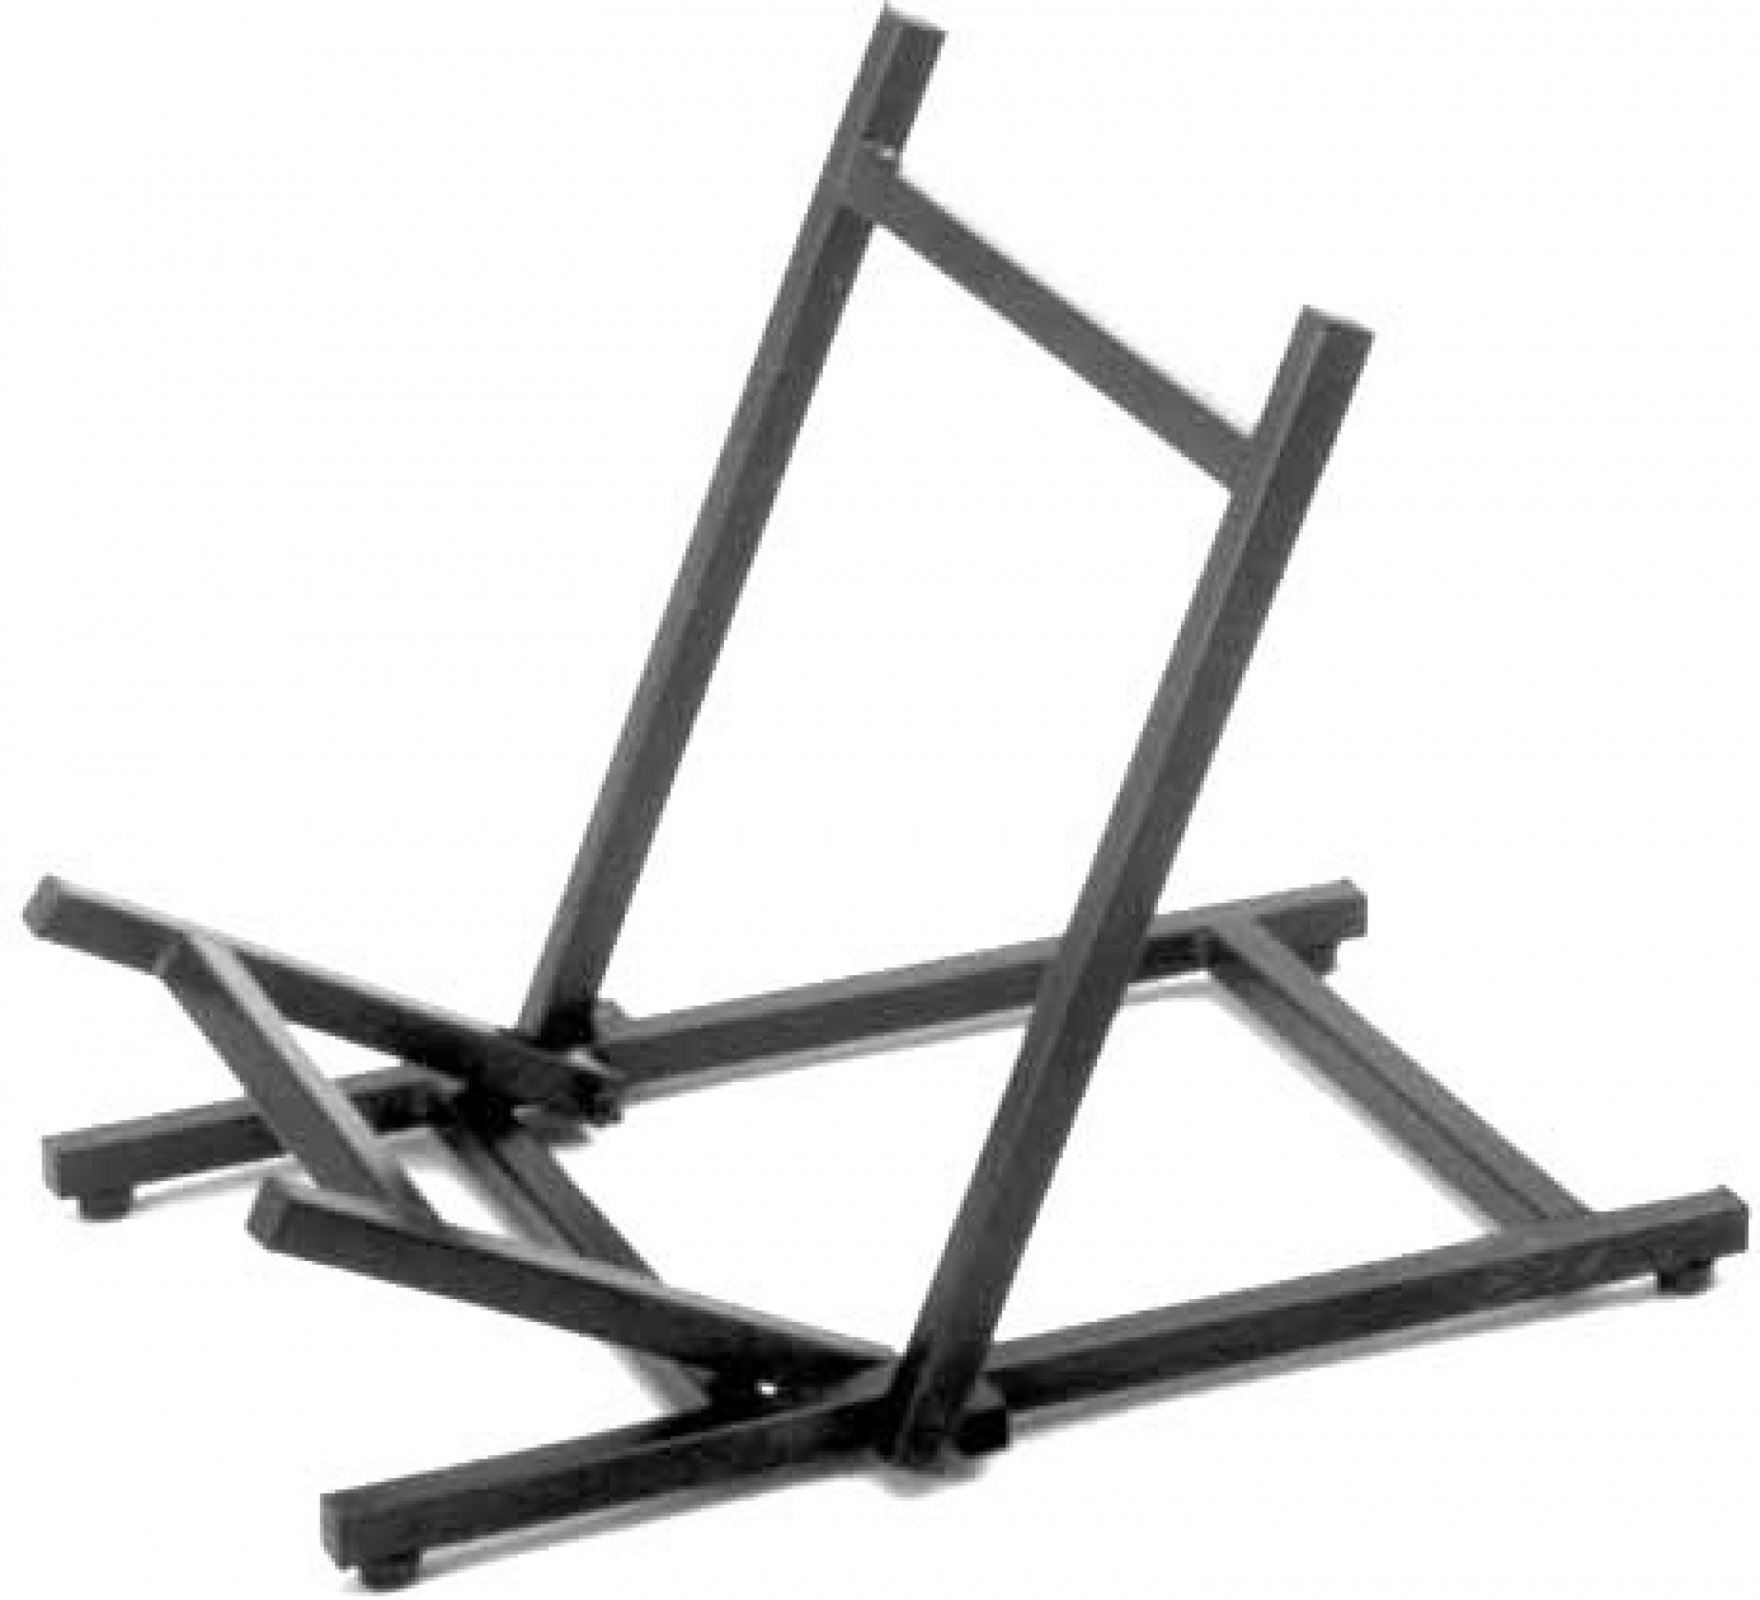 stagg amp stand gas 3.2